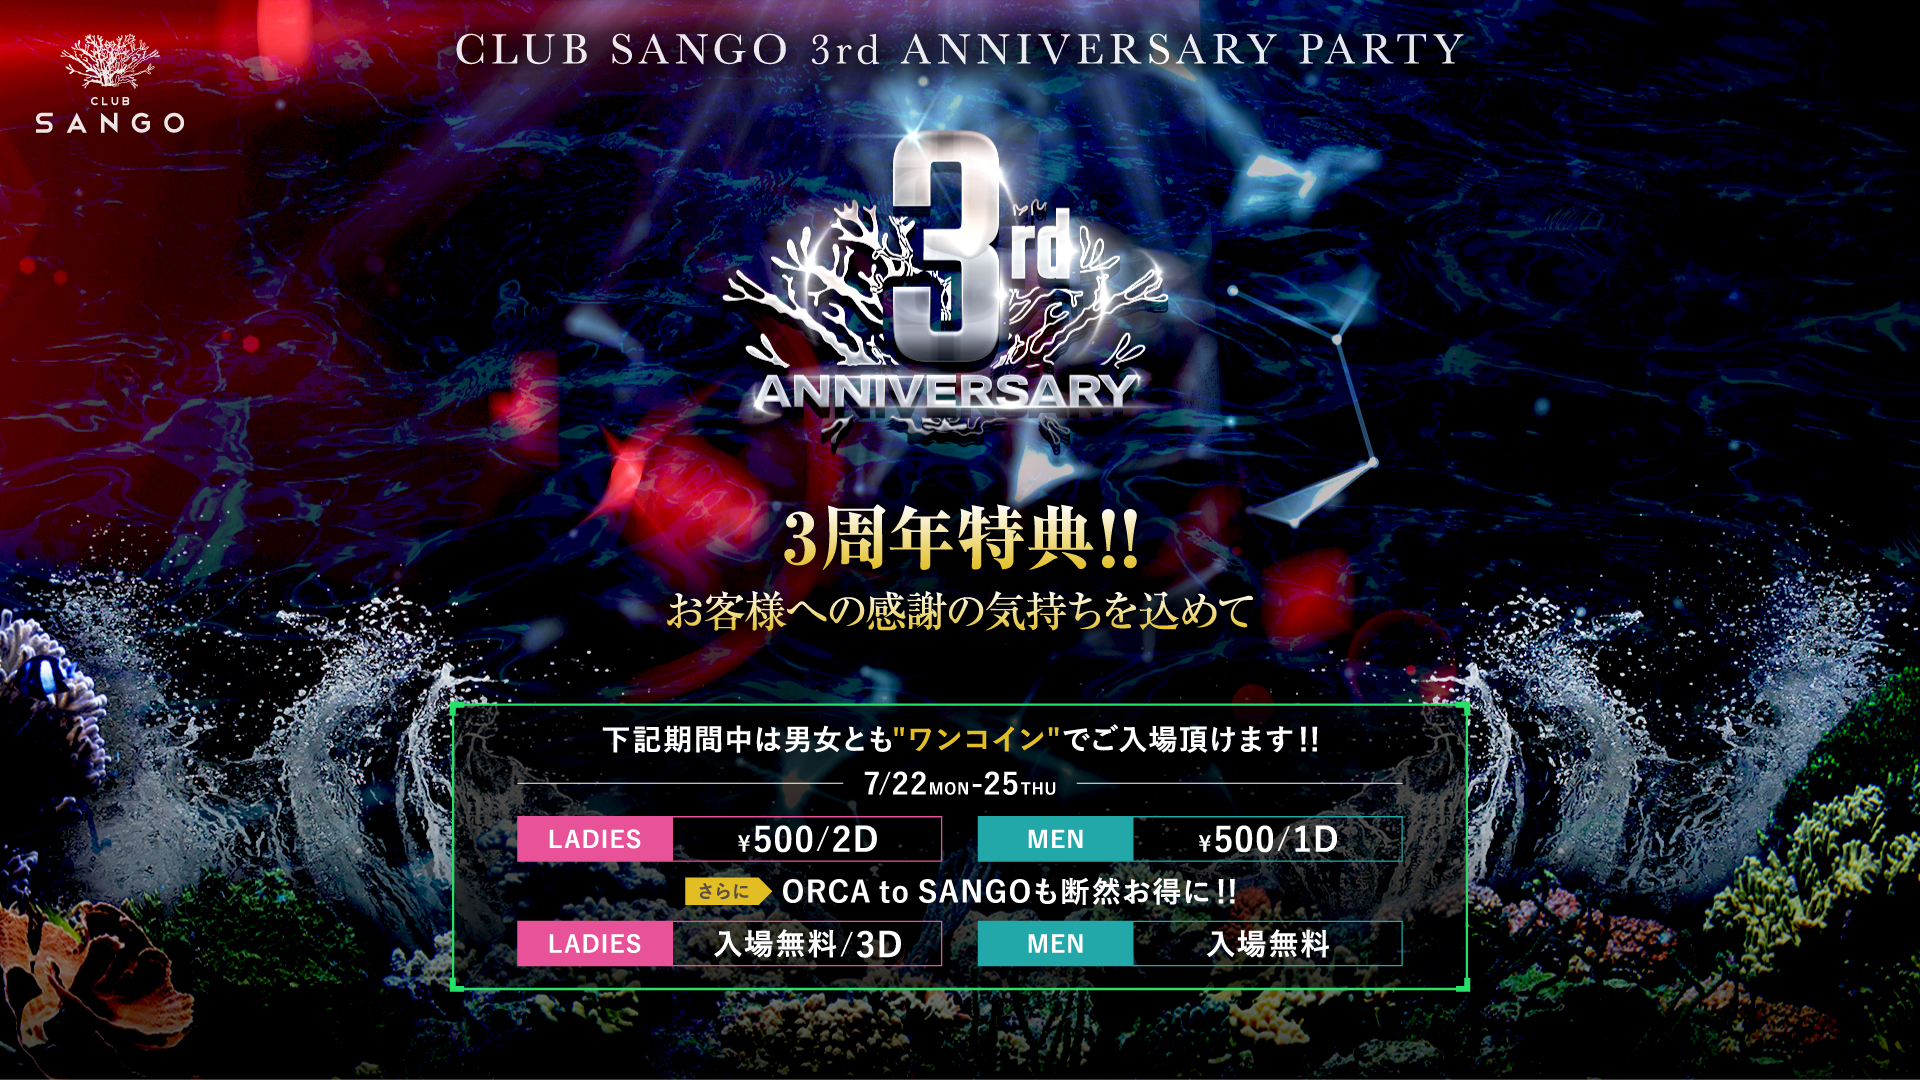 CLUB SANGO 3rd ANNIVERSARY PARTY